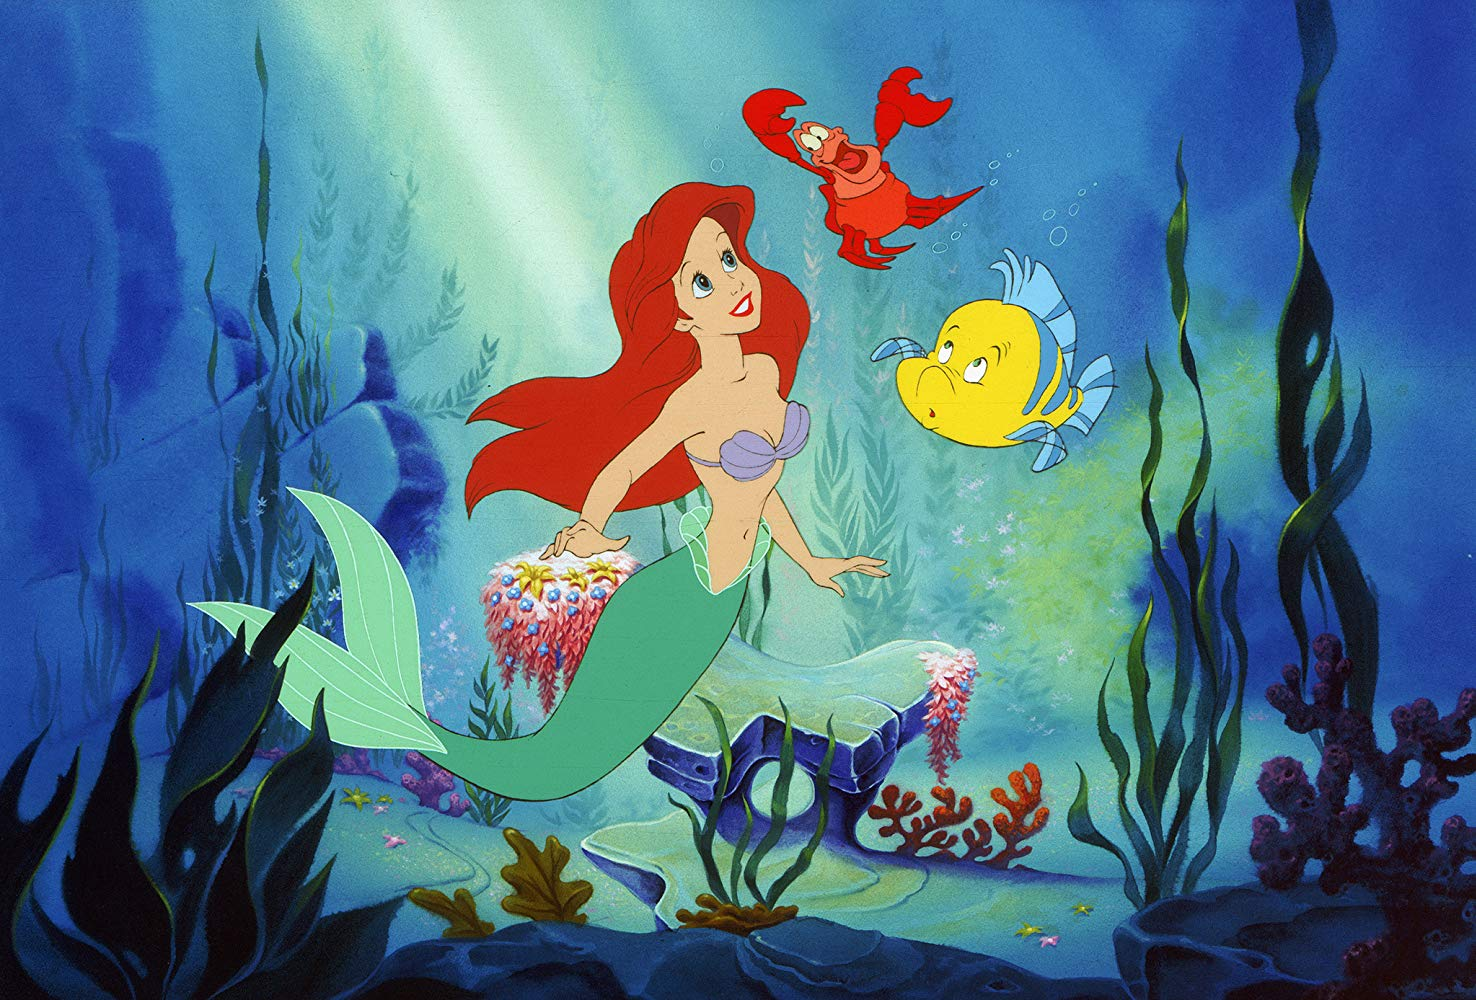 The mermaid Ariel (voiced by Jodi Benson) and her companions (l to r) the crab Sebastian (voiced by Samuel E. Wright) and Flounder (voiced by Jason Marin) in The Little Mermaid (1989)